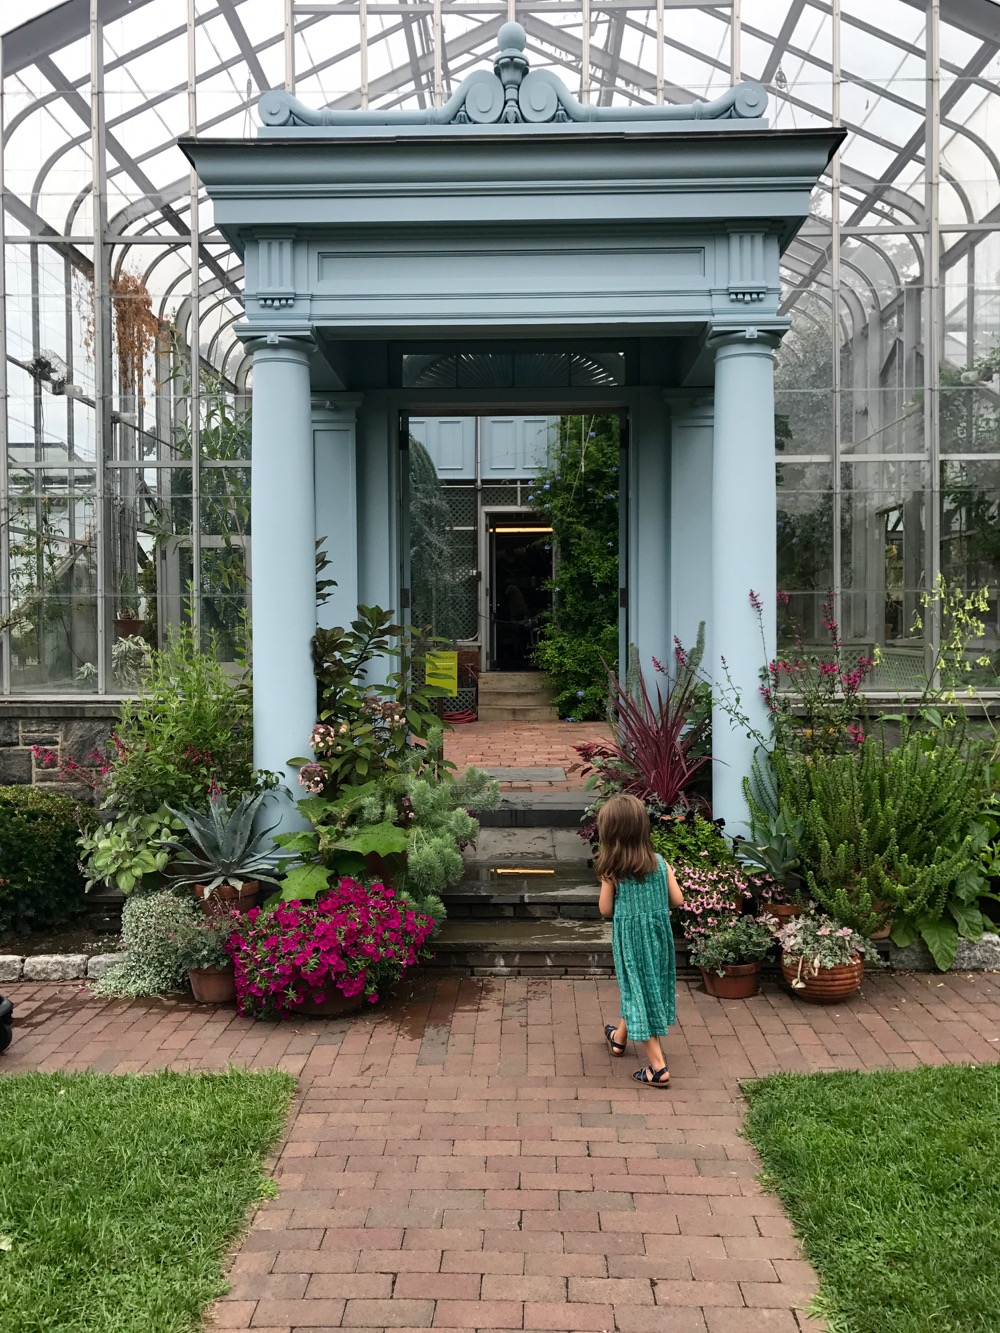 entrance to Marco Polo Stufano Conservatory at Wave Hill